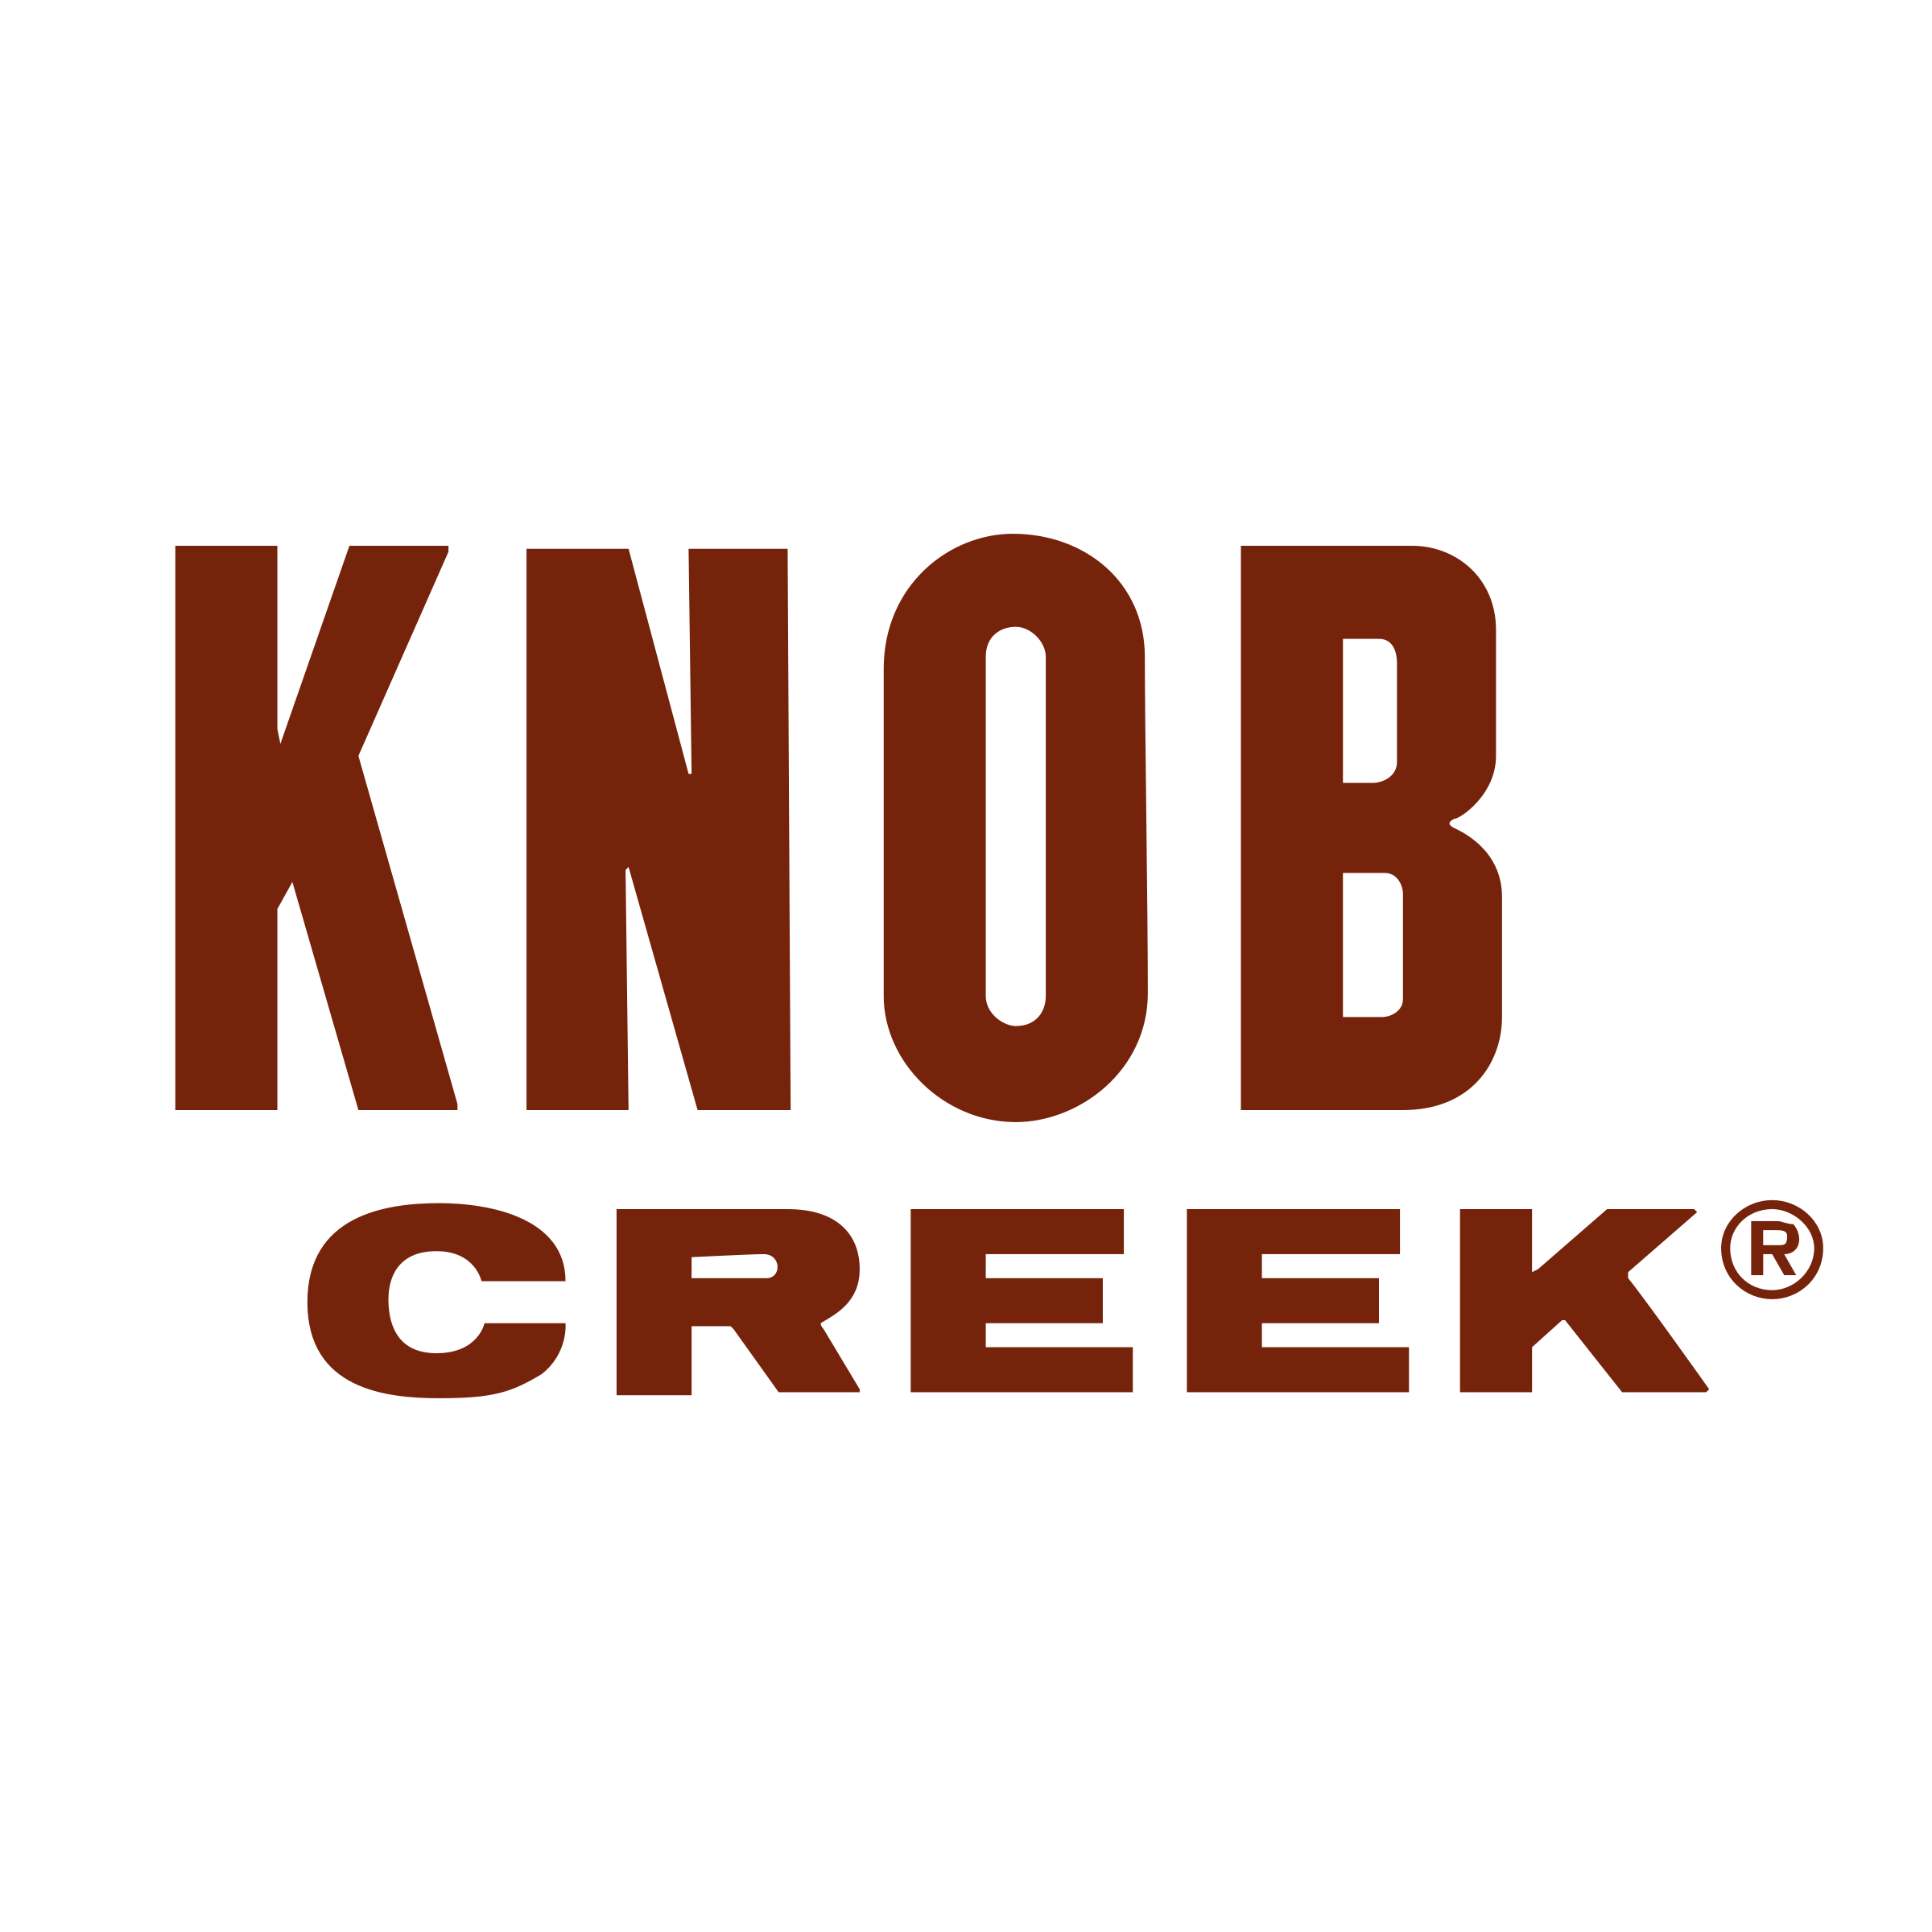 Knob logo png transparent. Creek vector graphic black and white